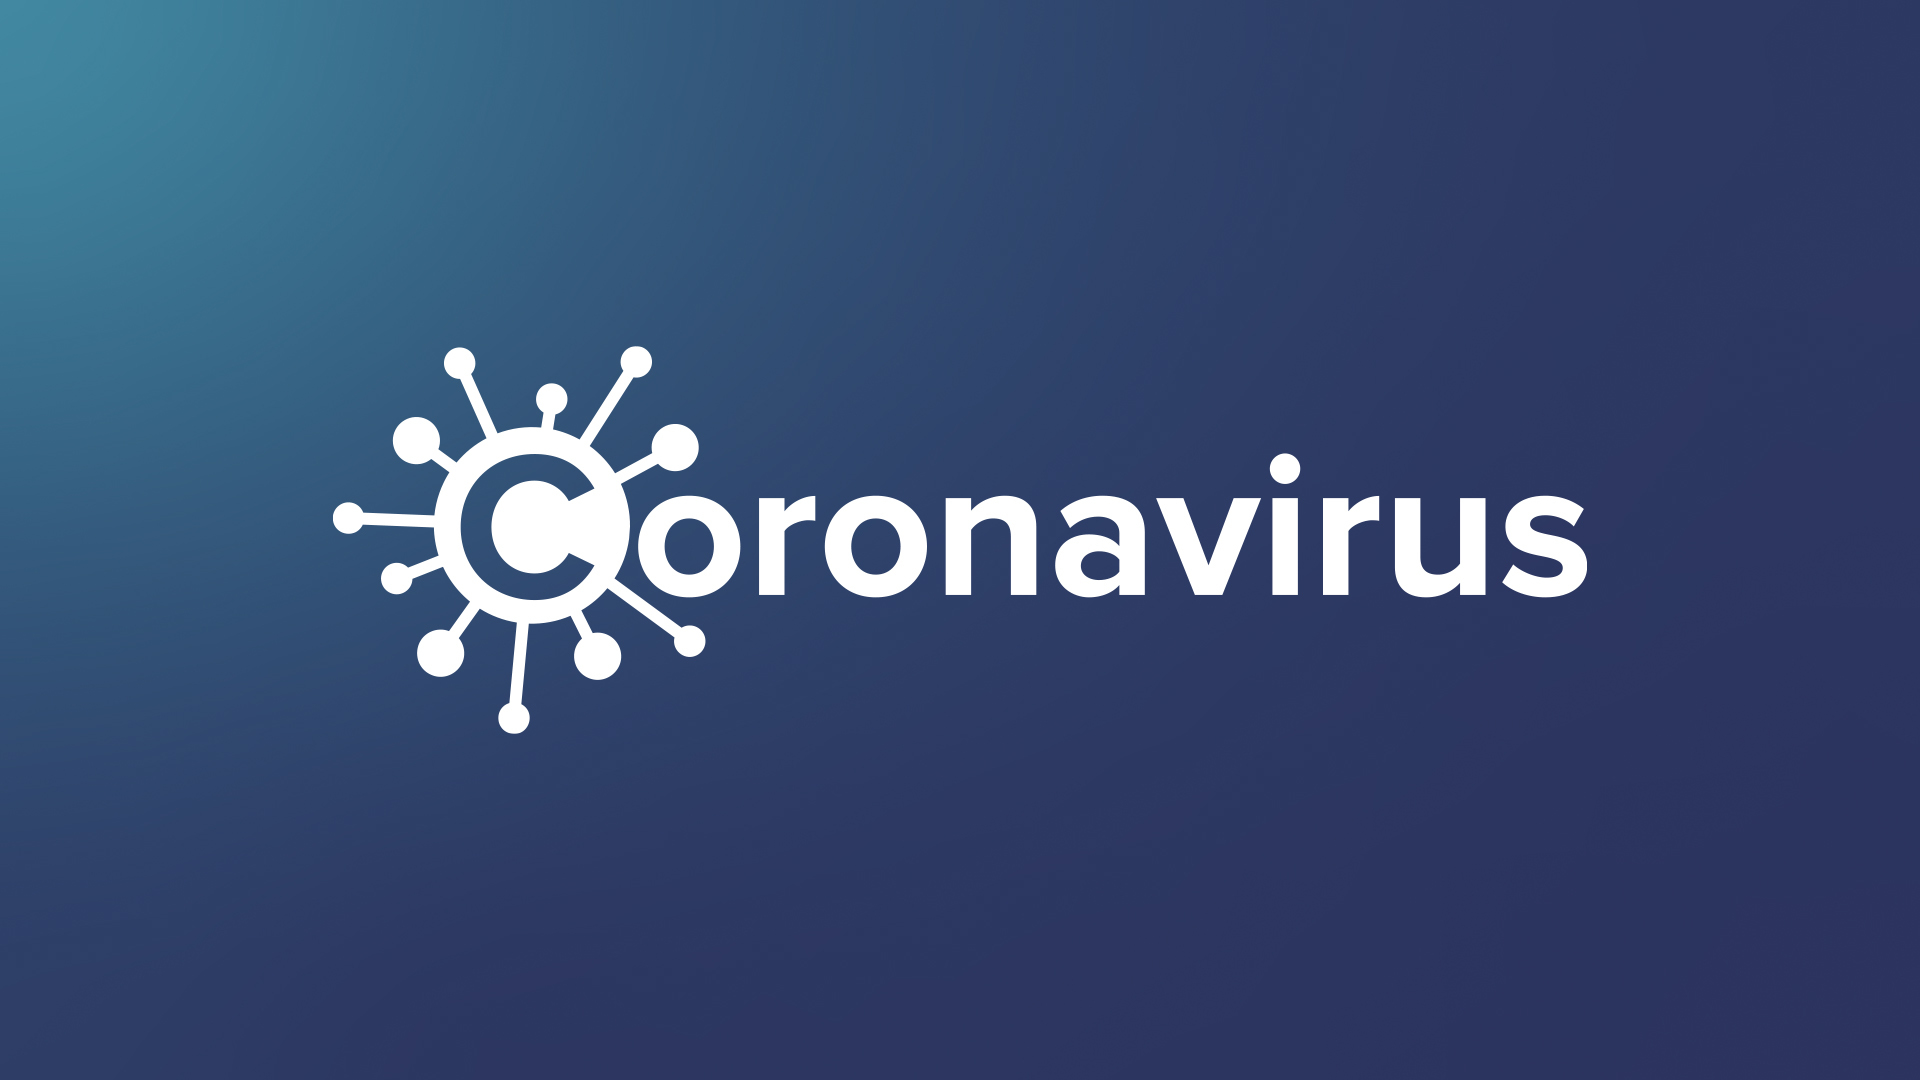 Coronavirus featured